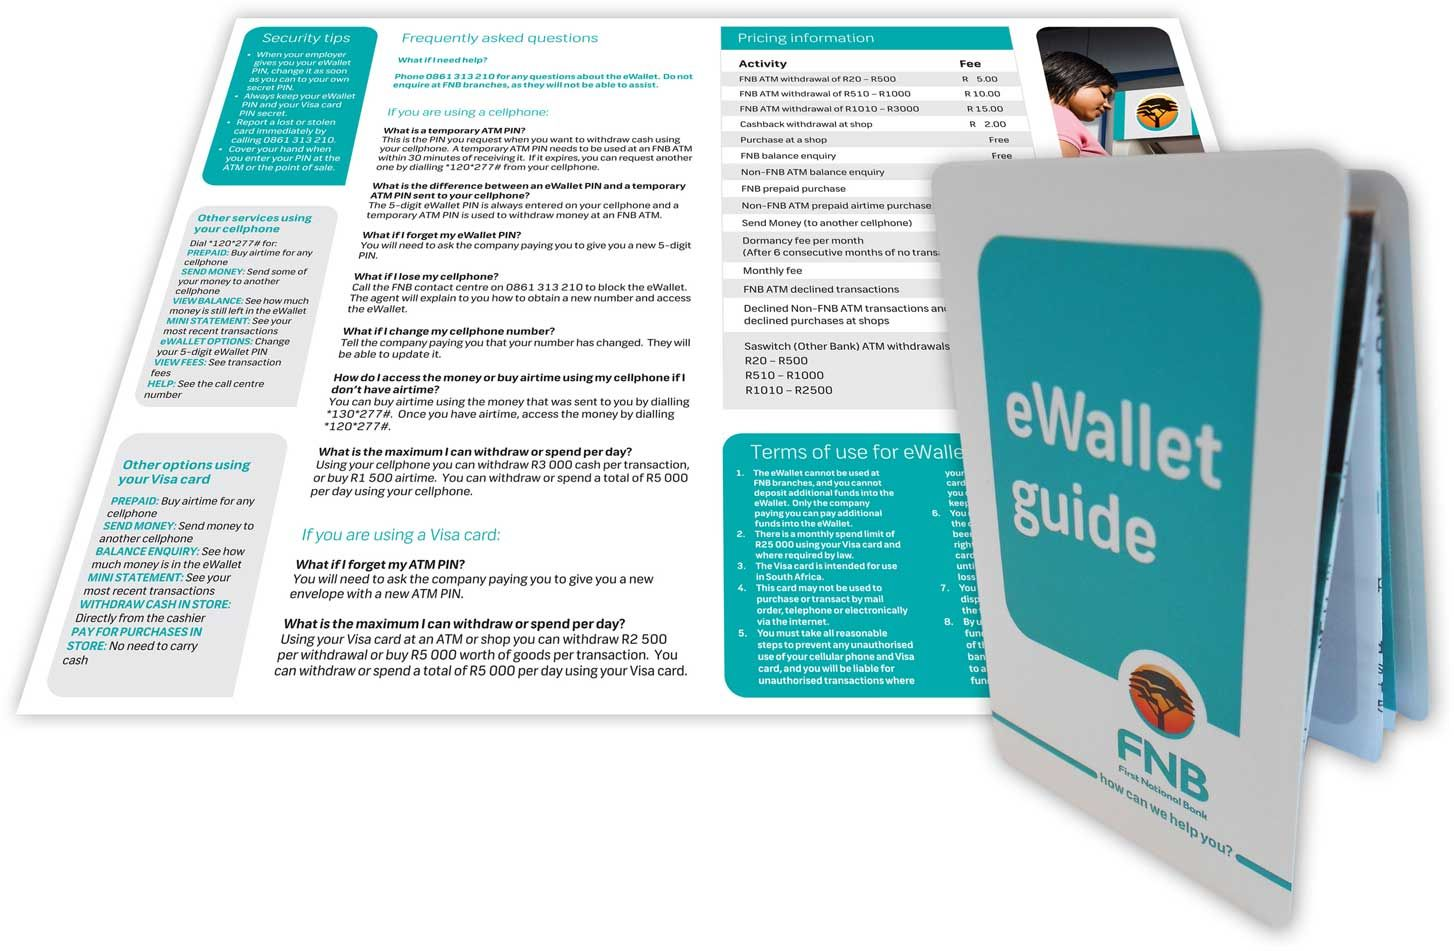 Credit cardsized FNB eWallet Guide for consumers Shows